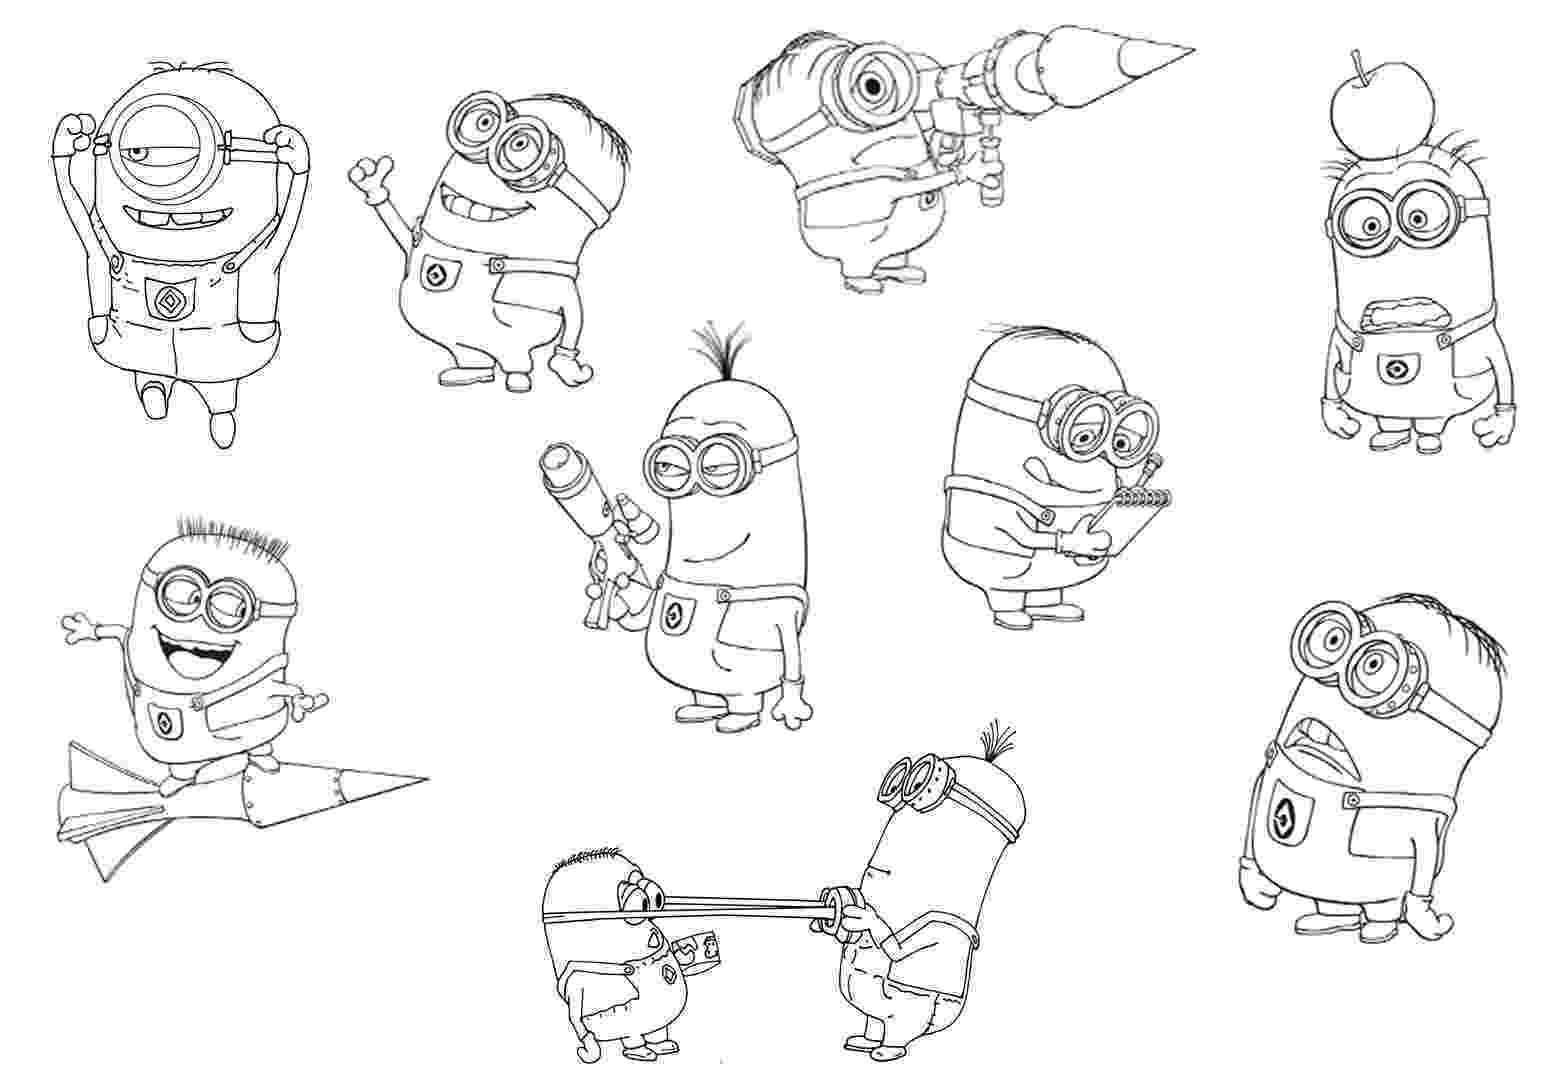 despicable me 2 free coloring pages to print printable despicable me coloring pages for kids cool2bkids coloring to print 2 me despicable free pages